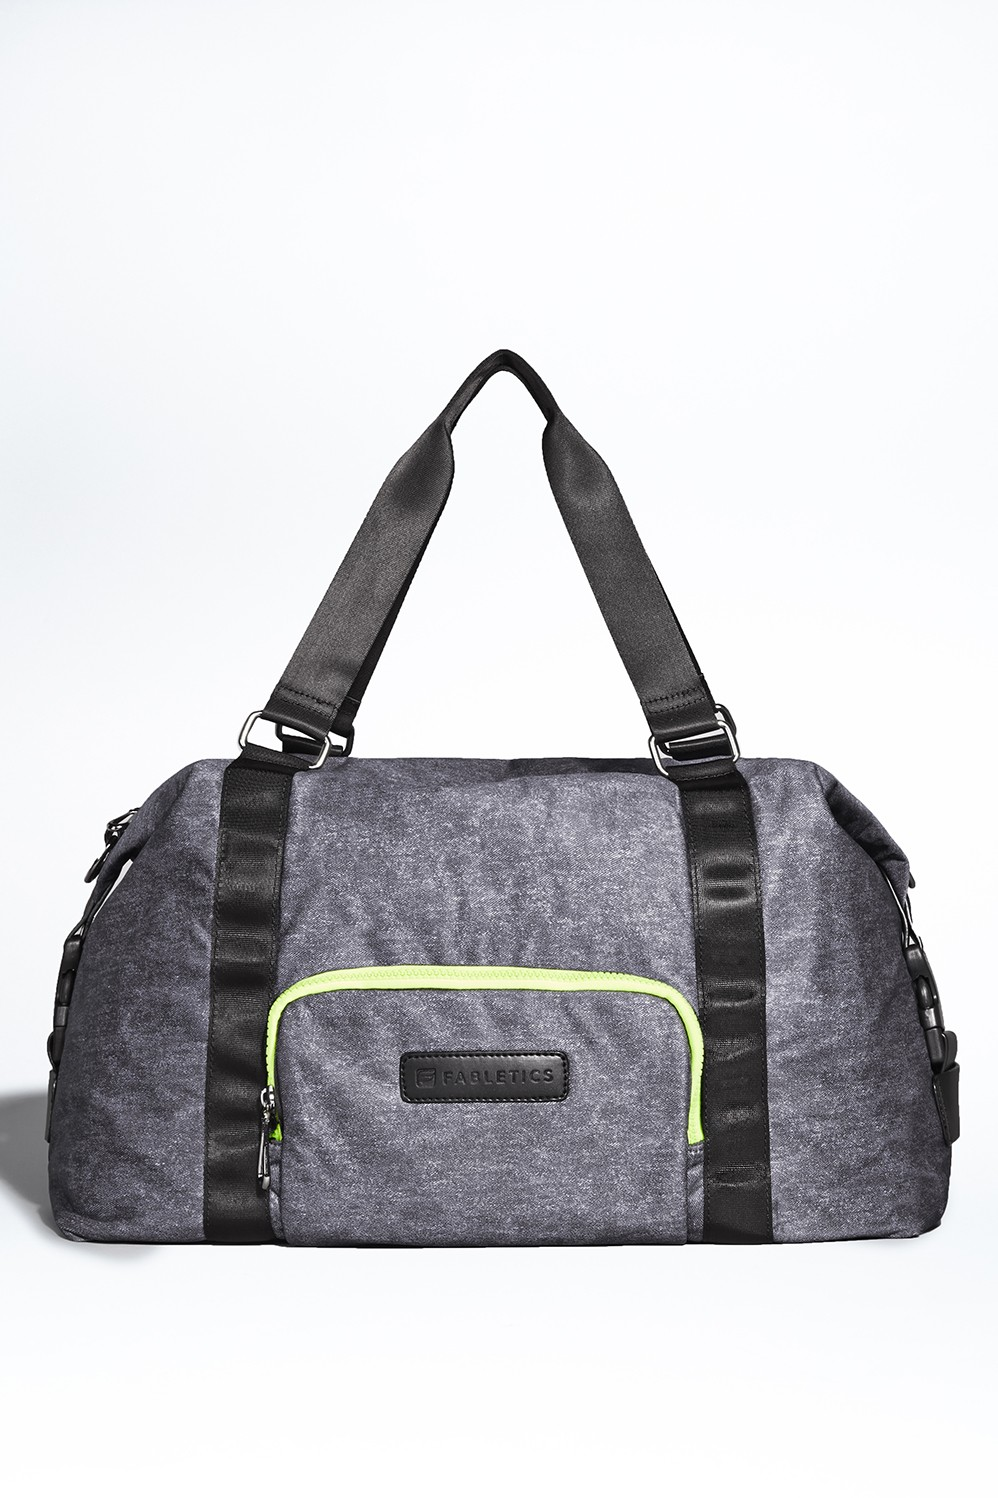 Apartminty Fresh Picks: Get Fit | The True Gym Bag